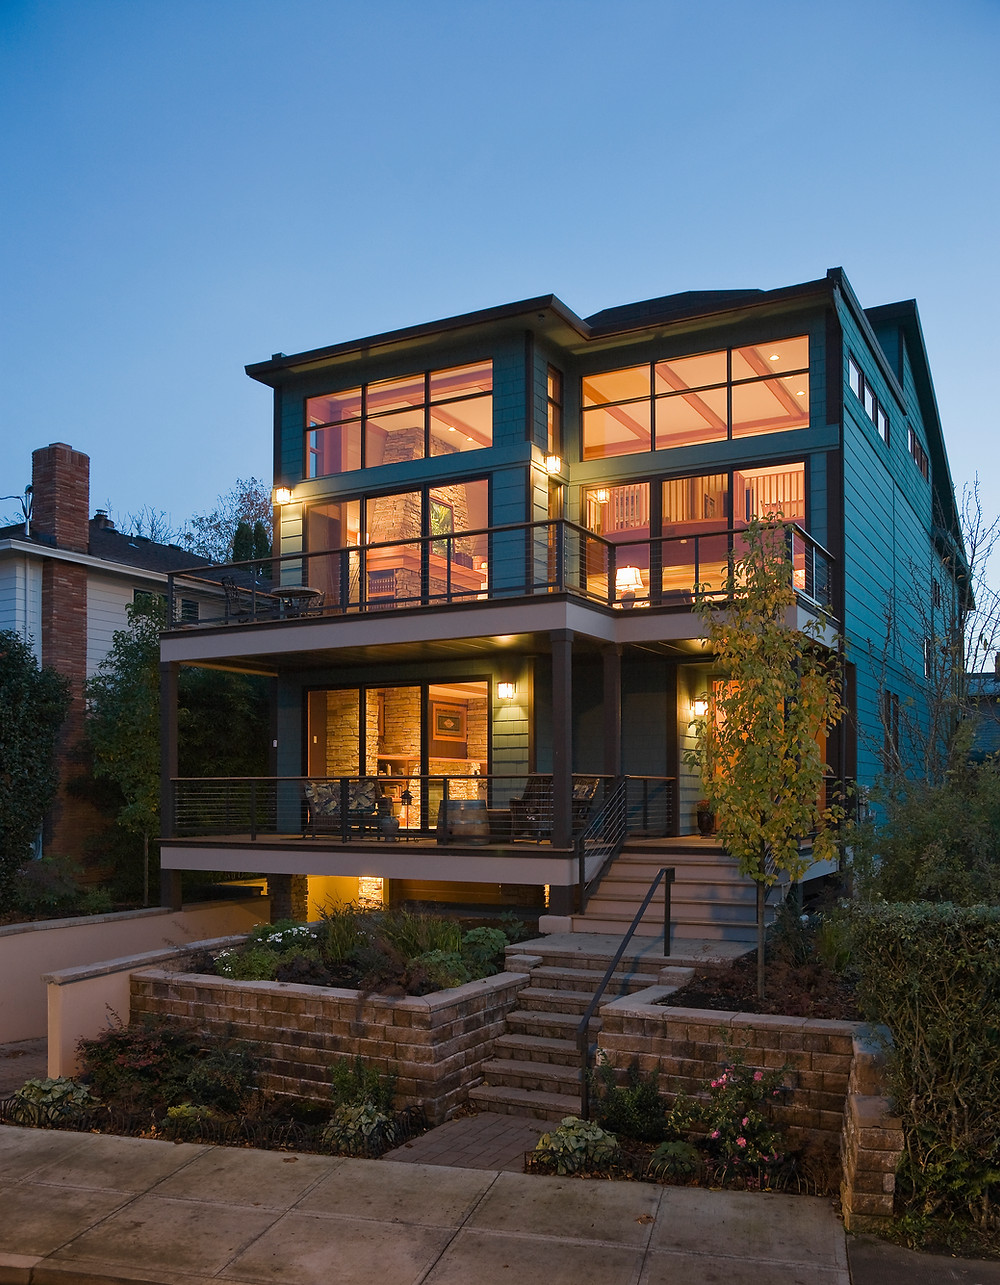 Outside of three story very modern wooden house at dusk, with the lights on in all the rooms